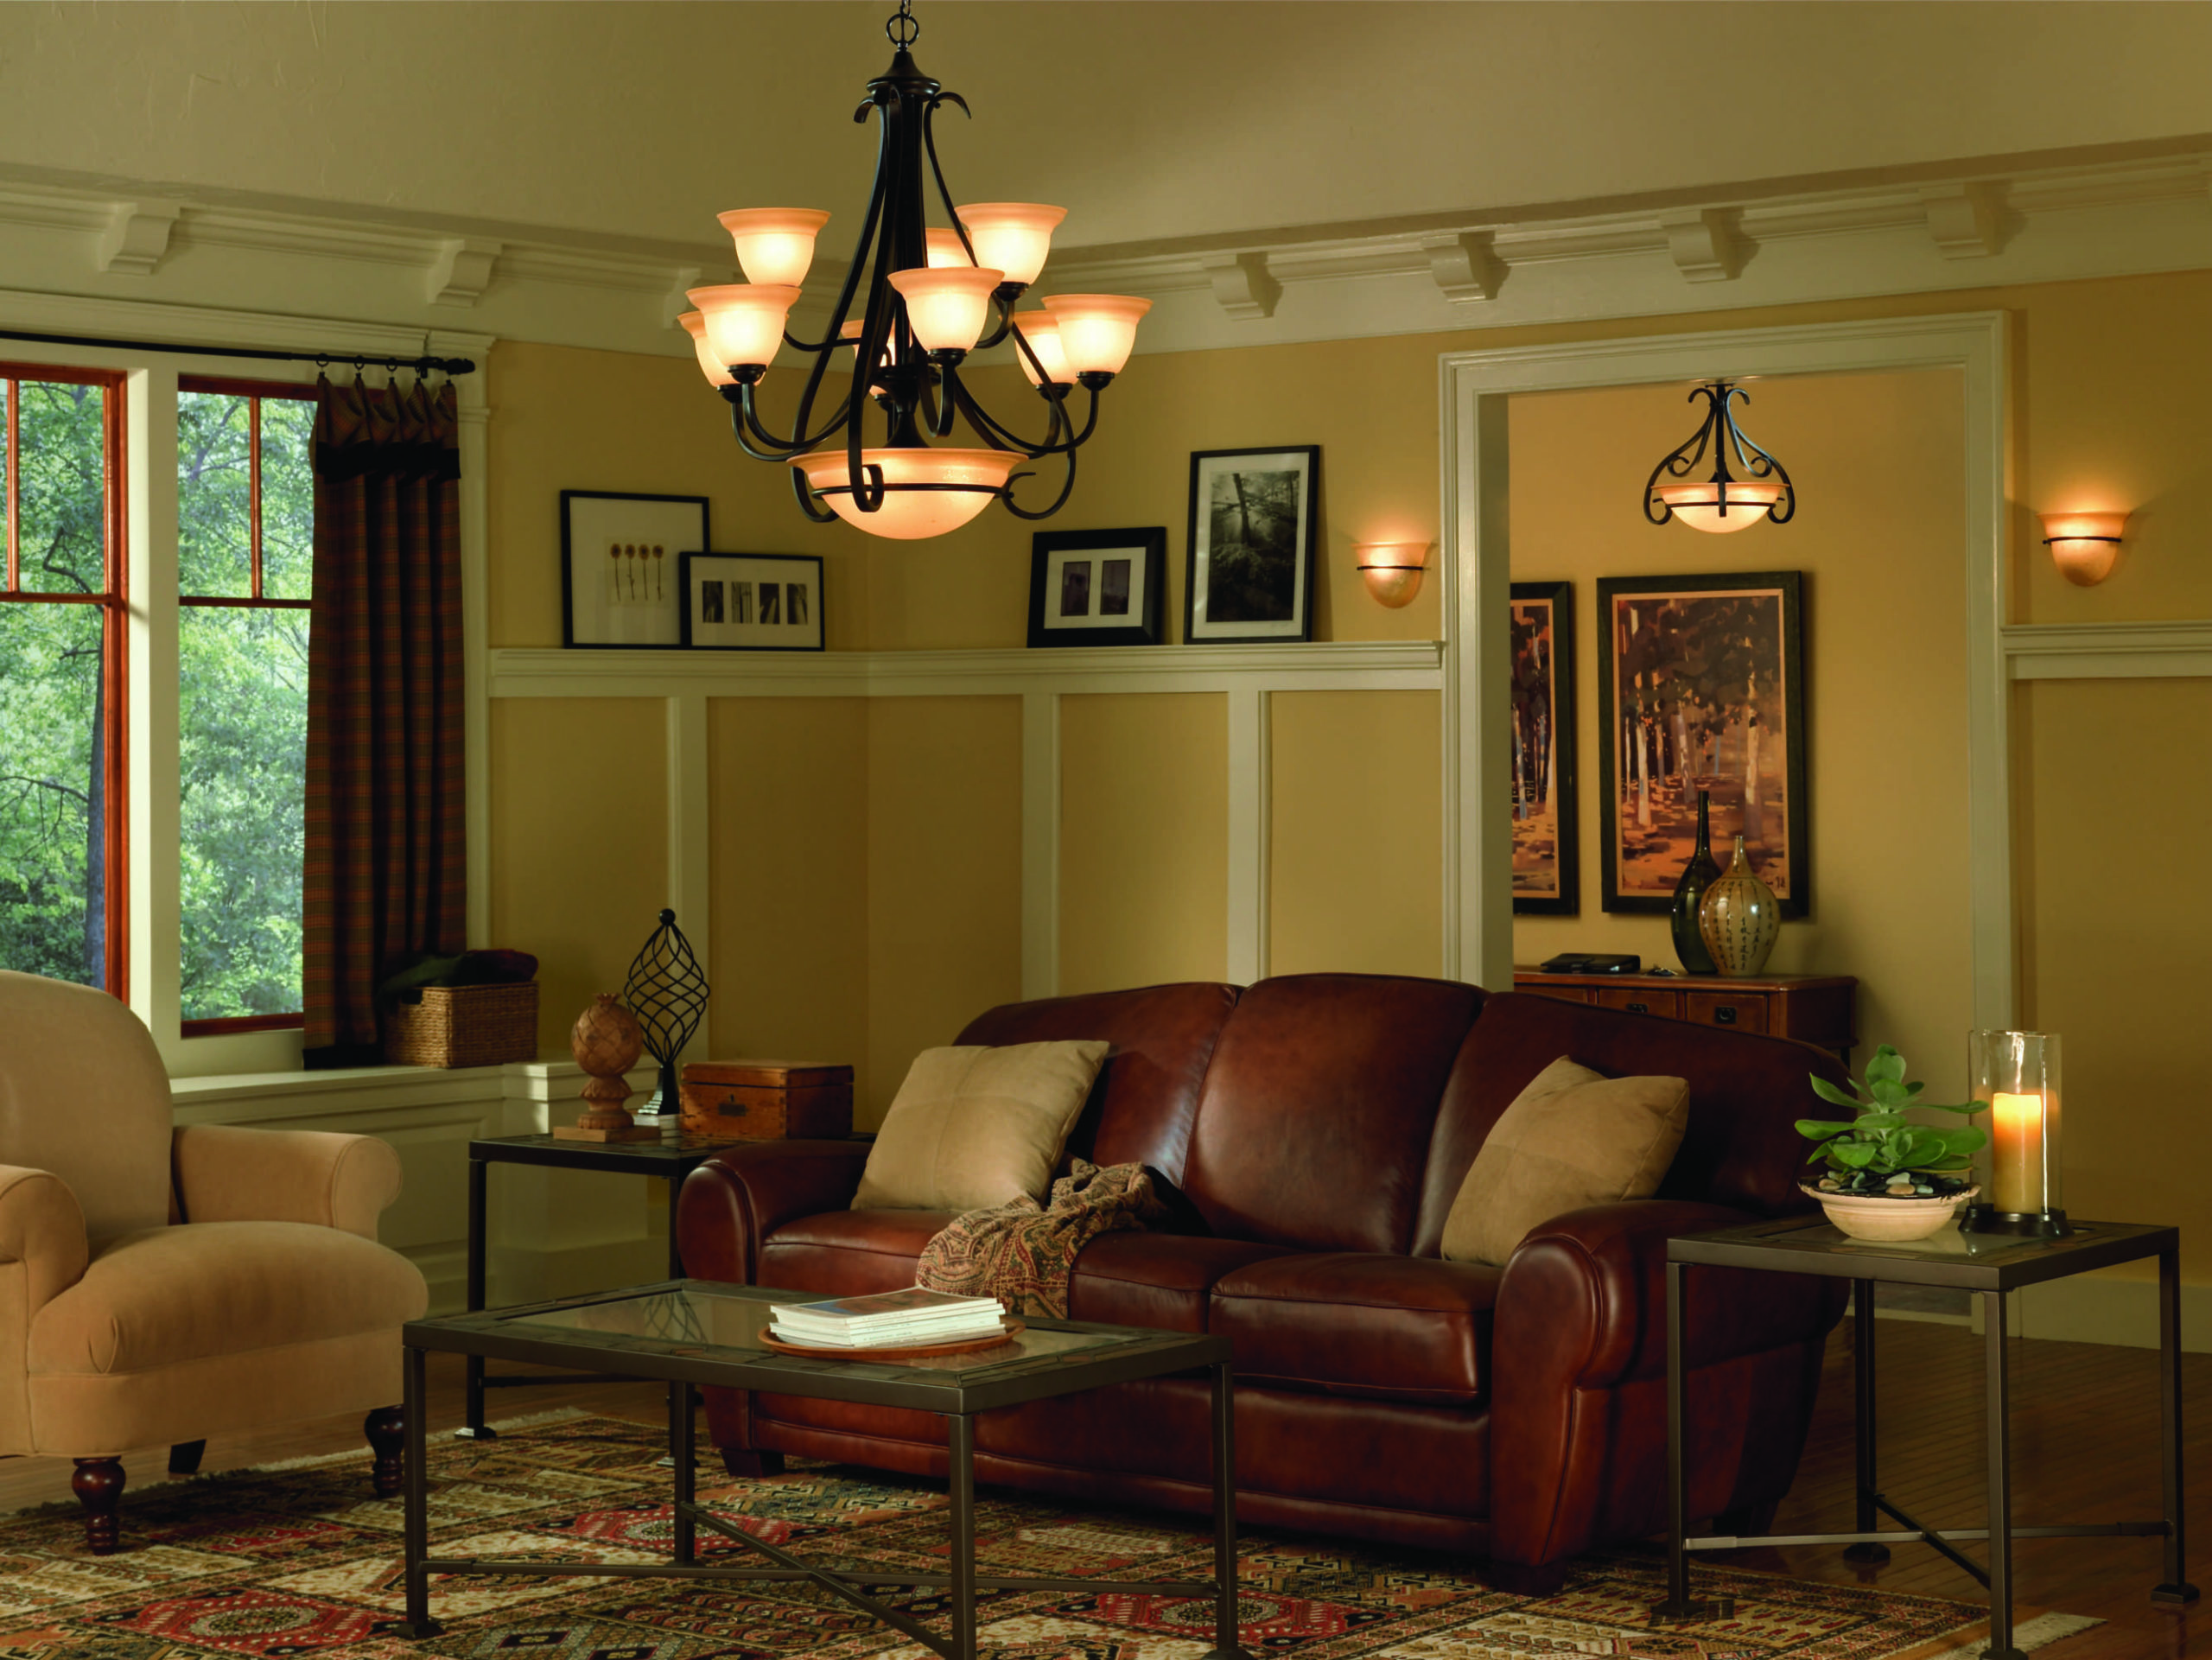 10 Ways To Use Lighting To Create A More Inviting Living Room Galleria Lighting